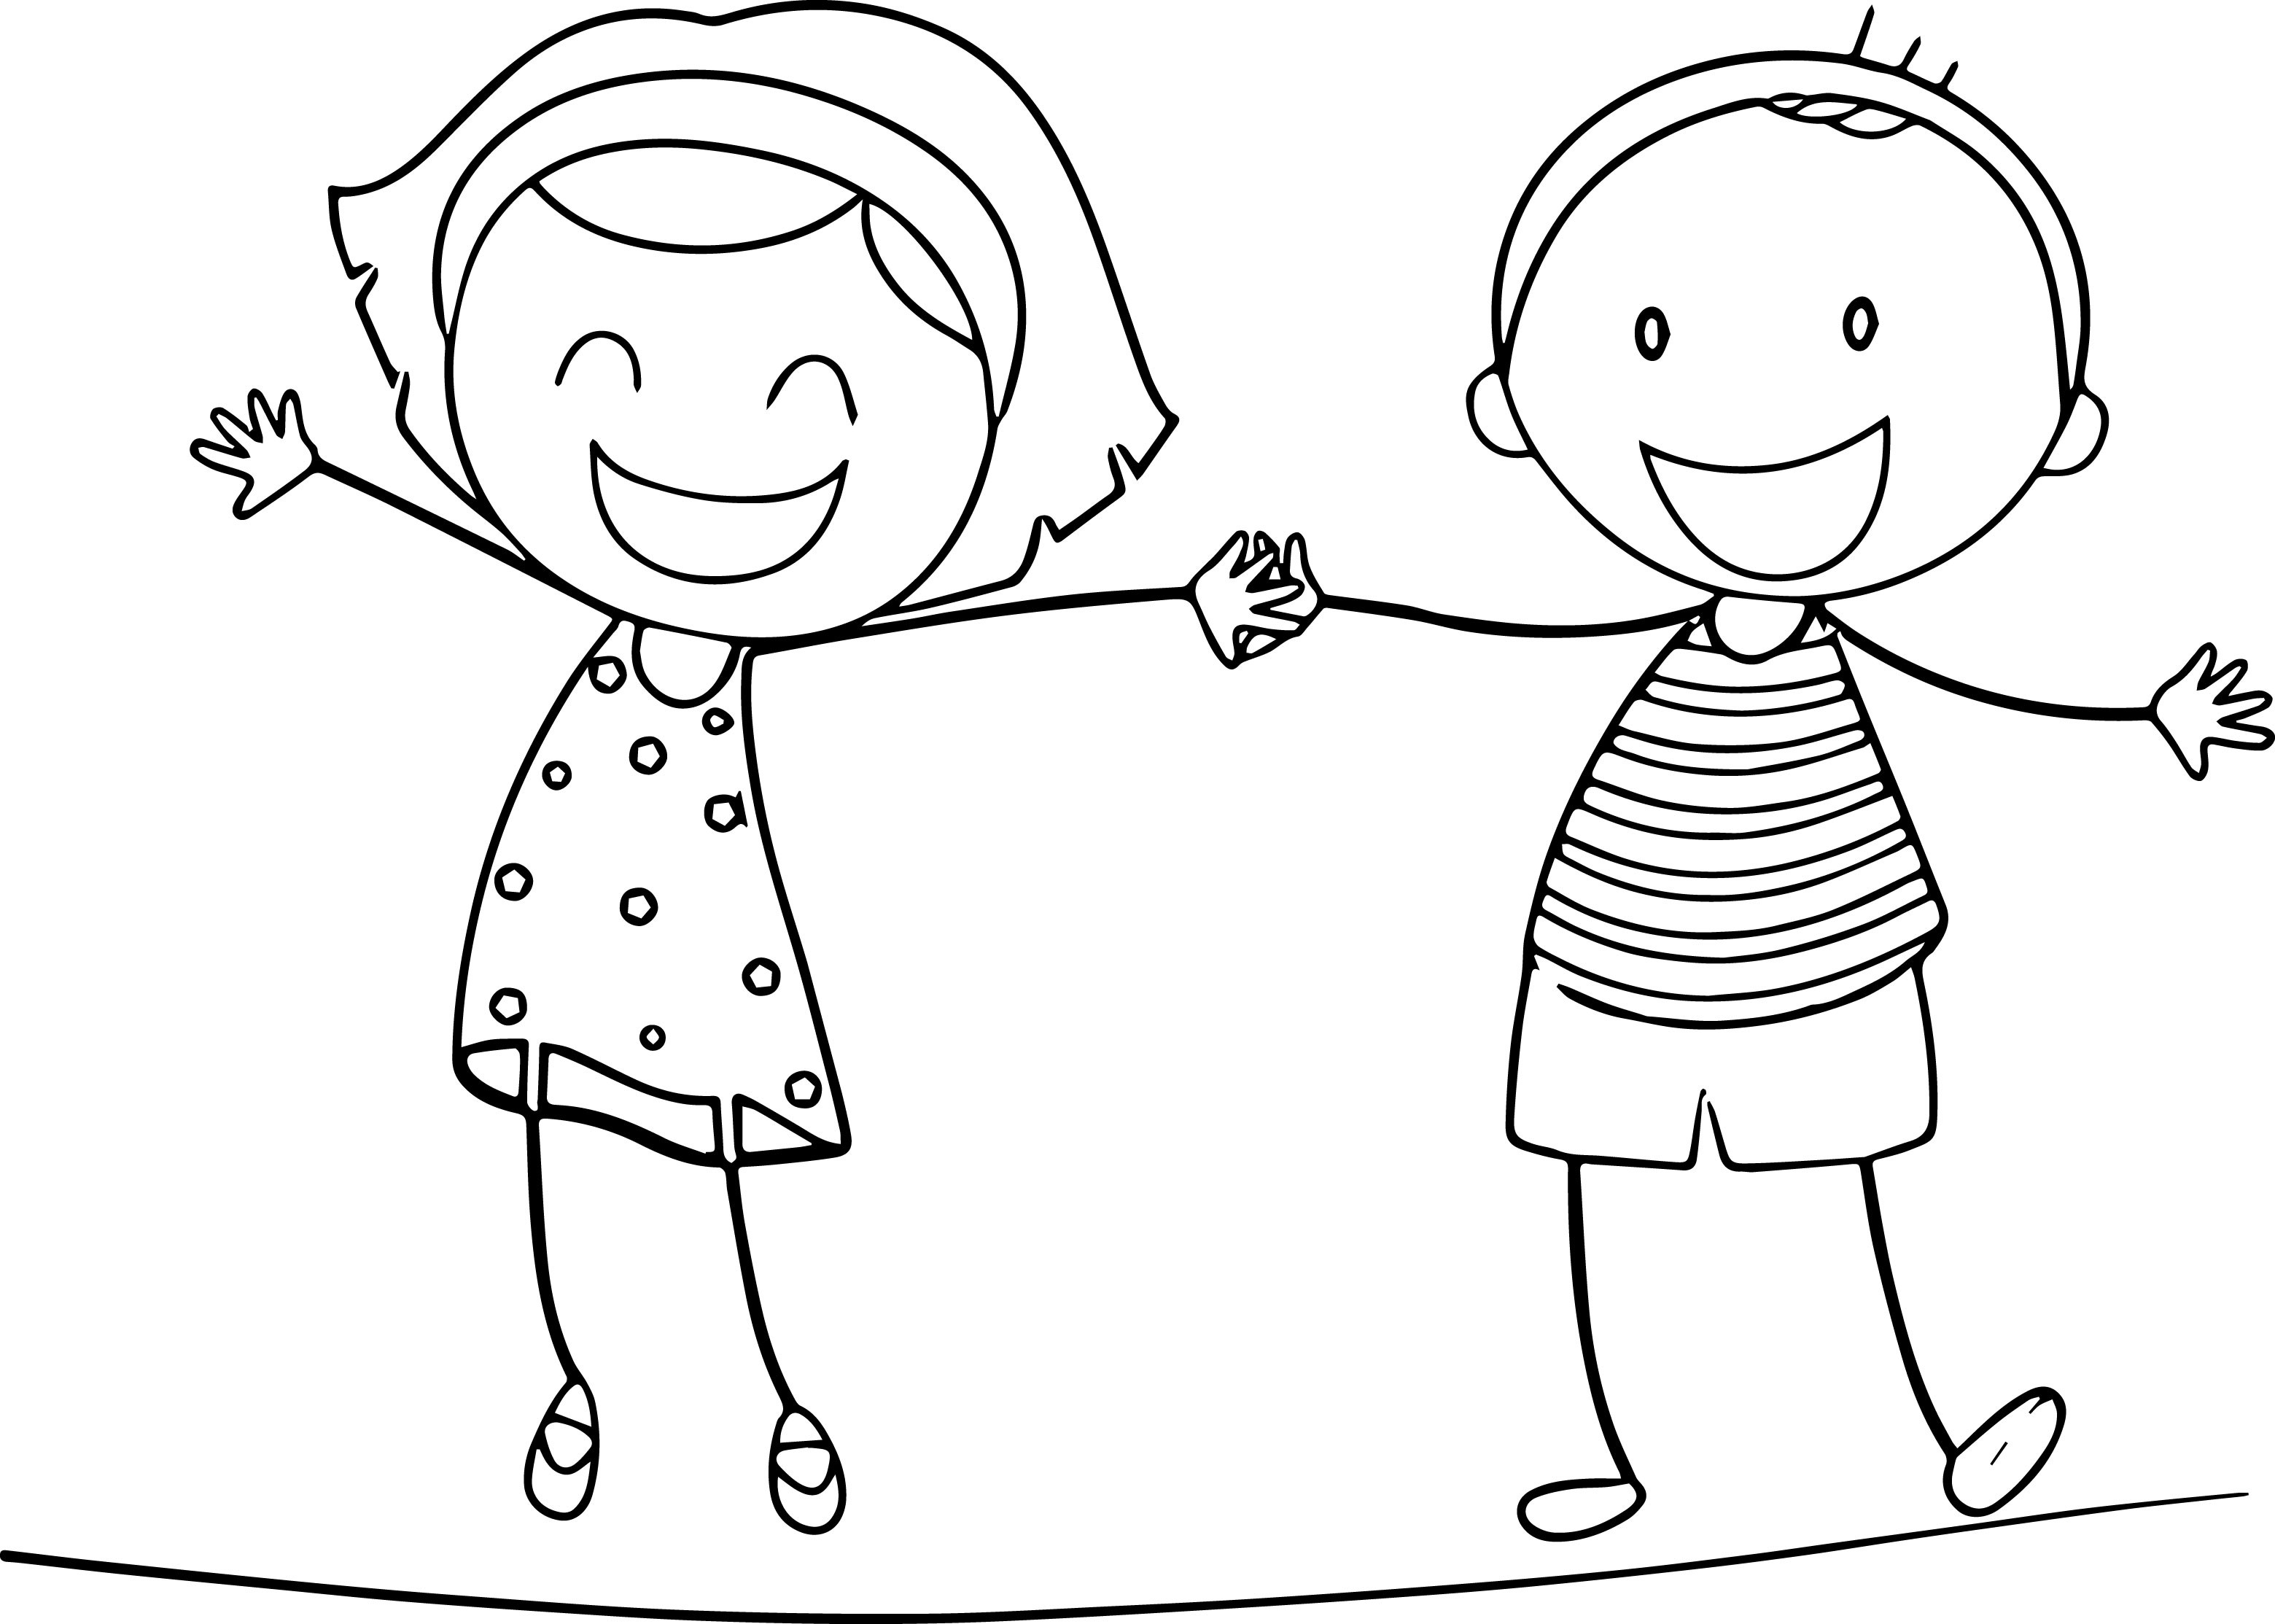 Girls Coloring Pages For Kids  Fun Coloring Pages For Boys And Girls The Art Jinni